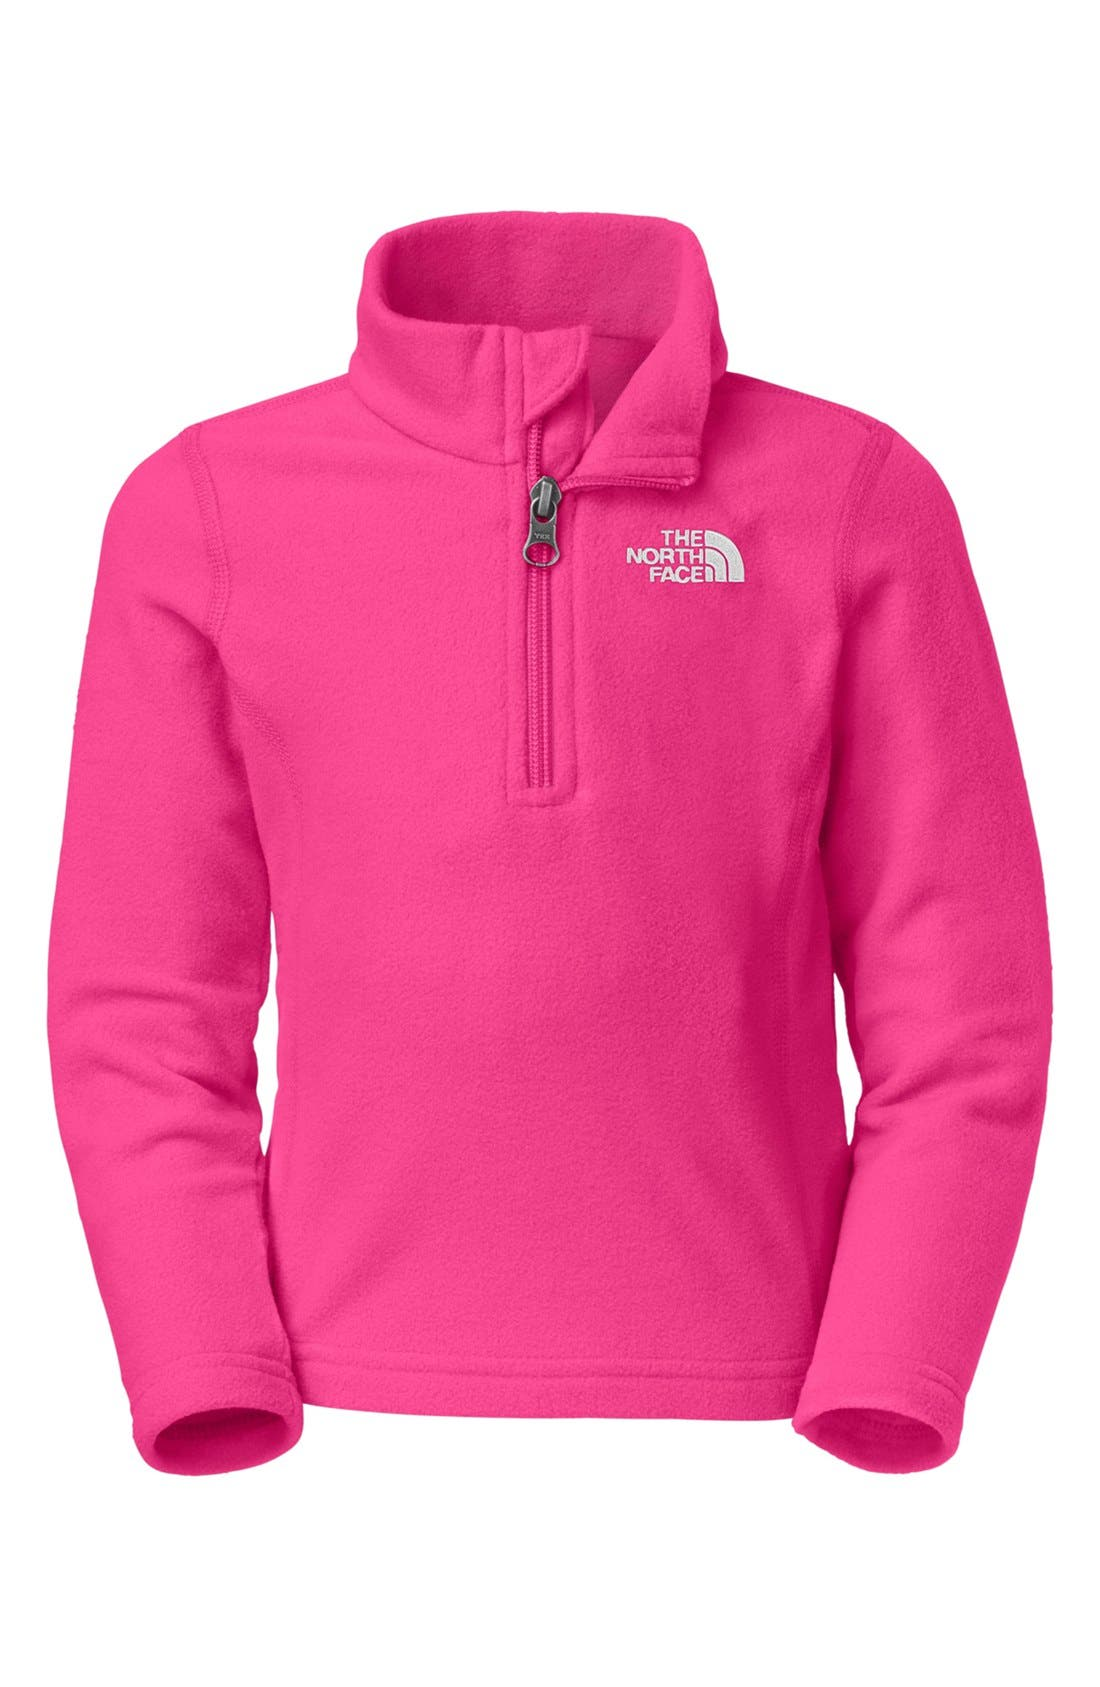 Main Image - The North Face 'Glacier' Quarter Zip Pullover (Toddler Girls)